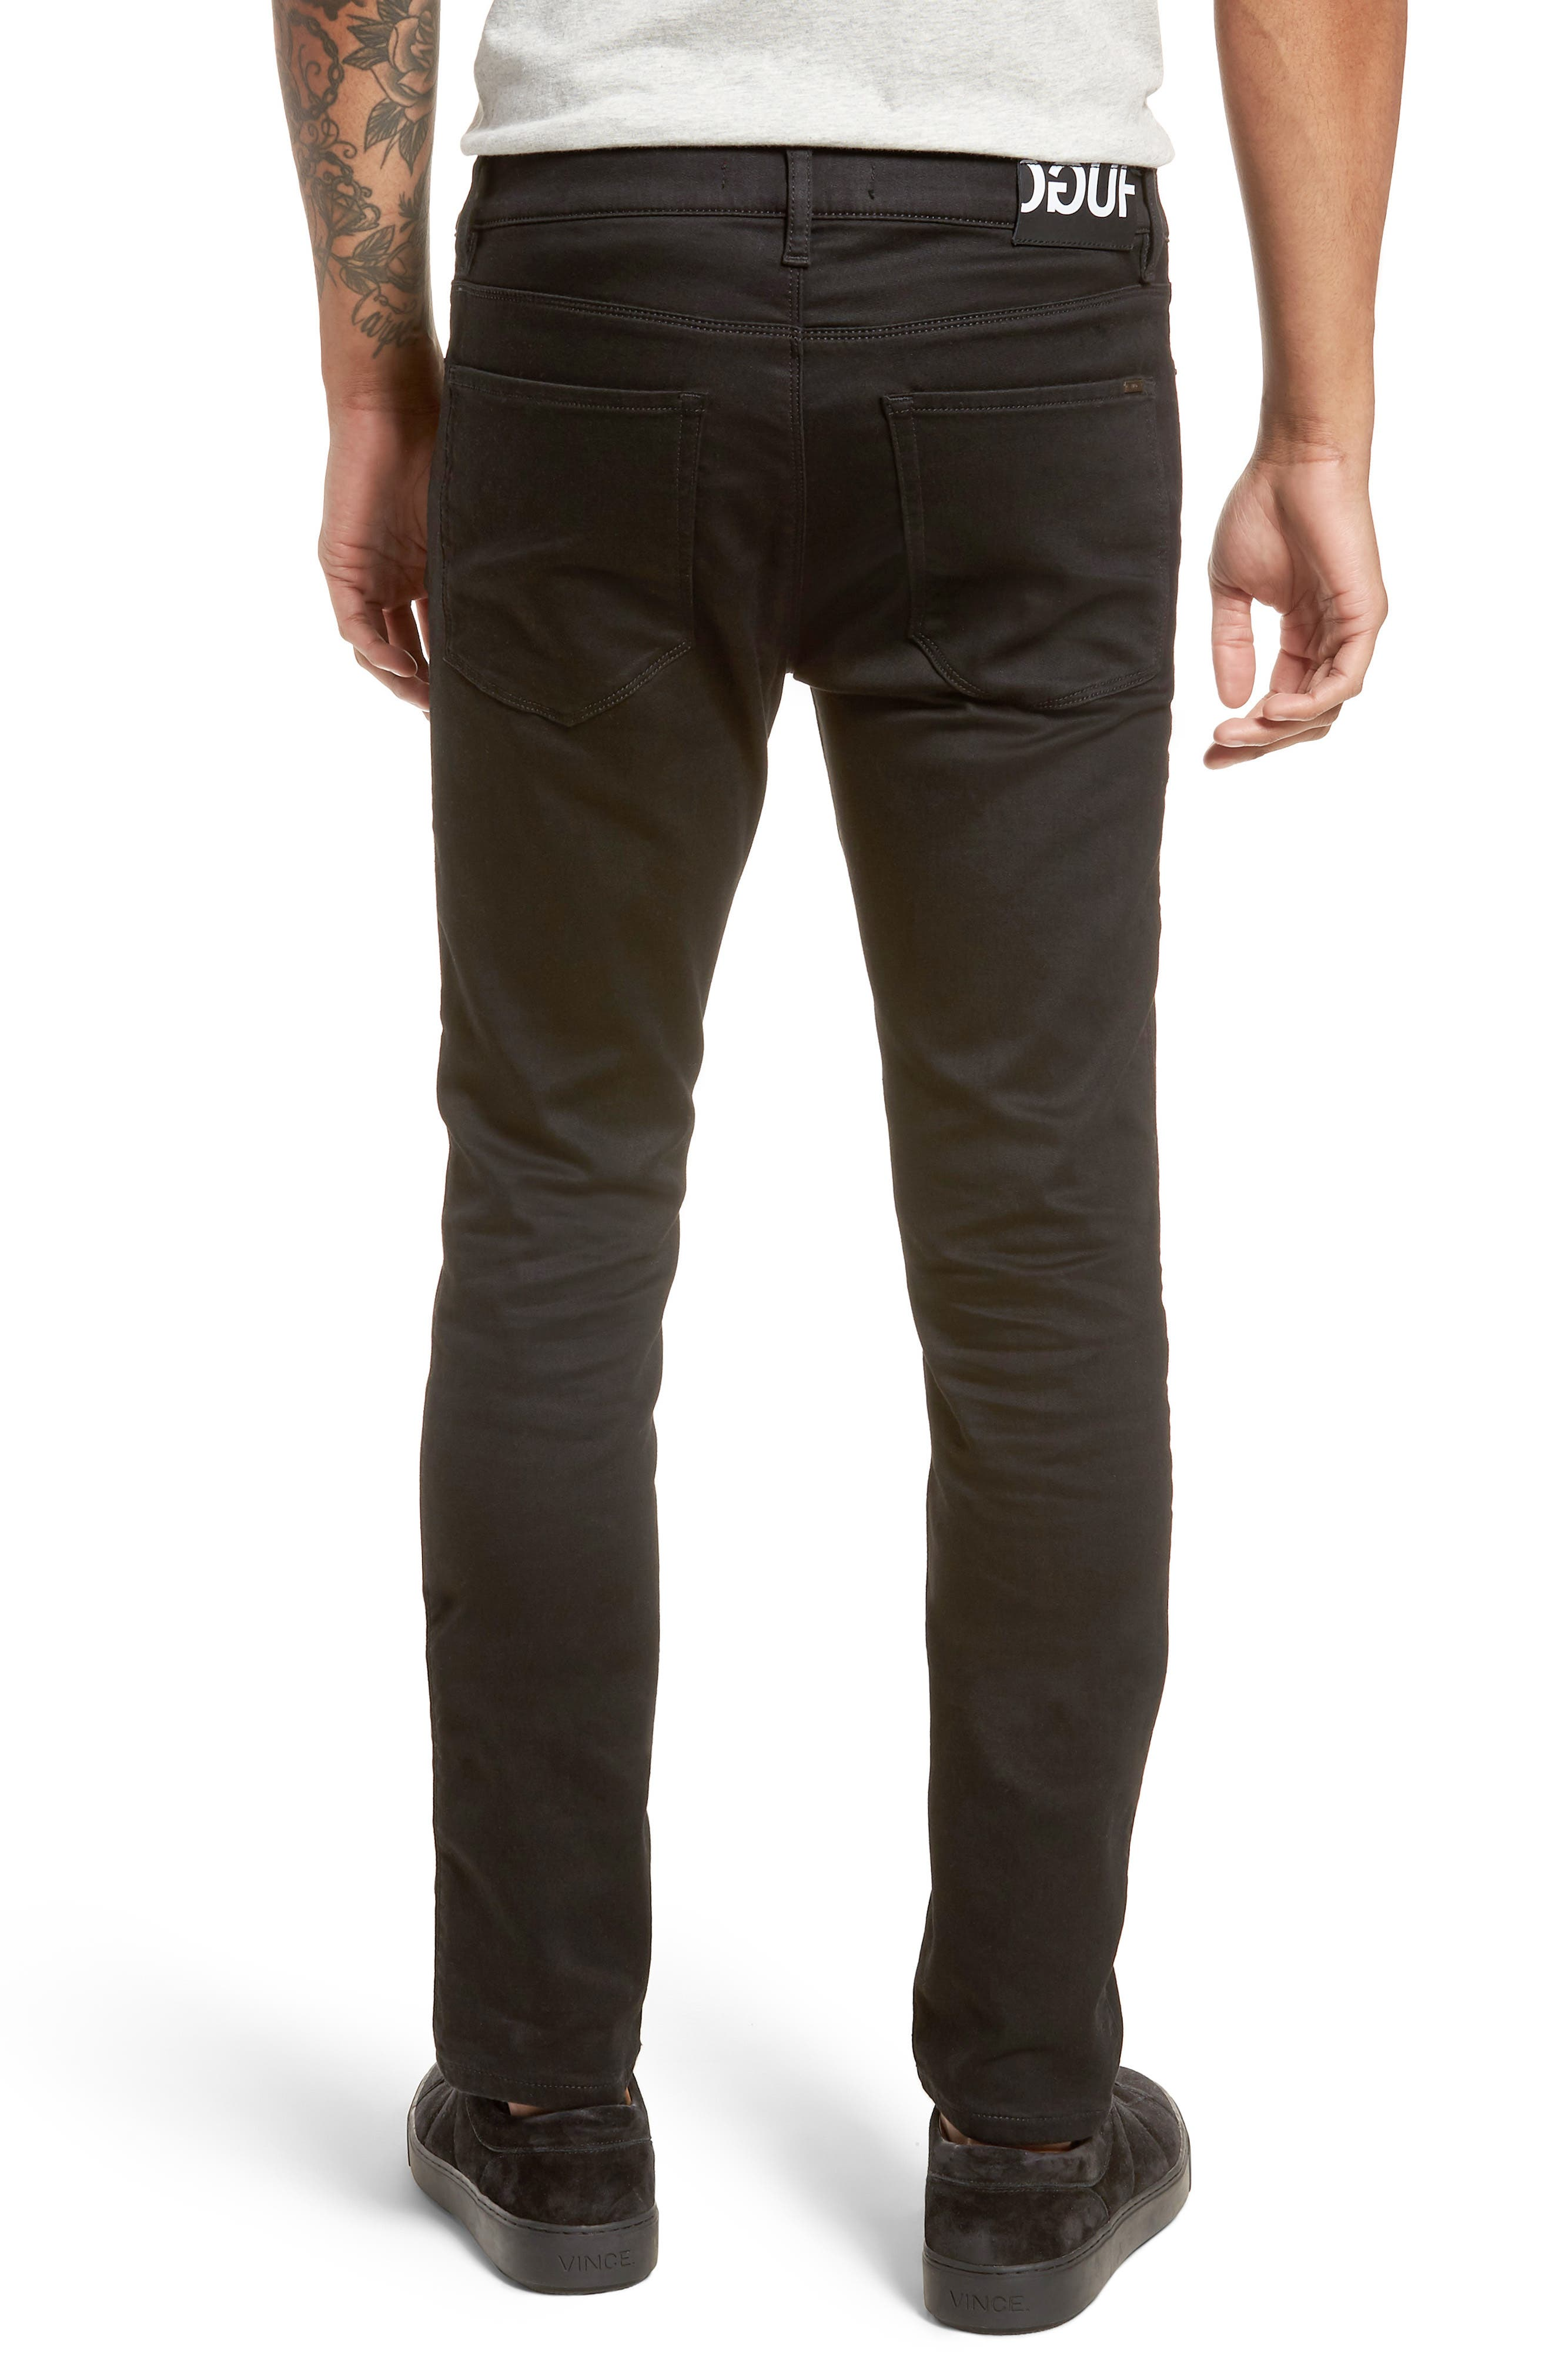 734 Skinny Fit Jeans,                             Alternate thumbnail 2, color,                             001